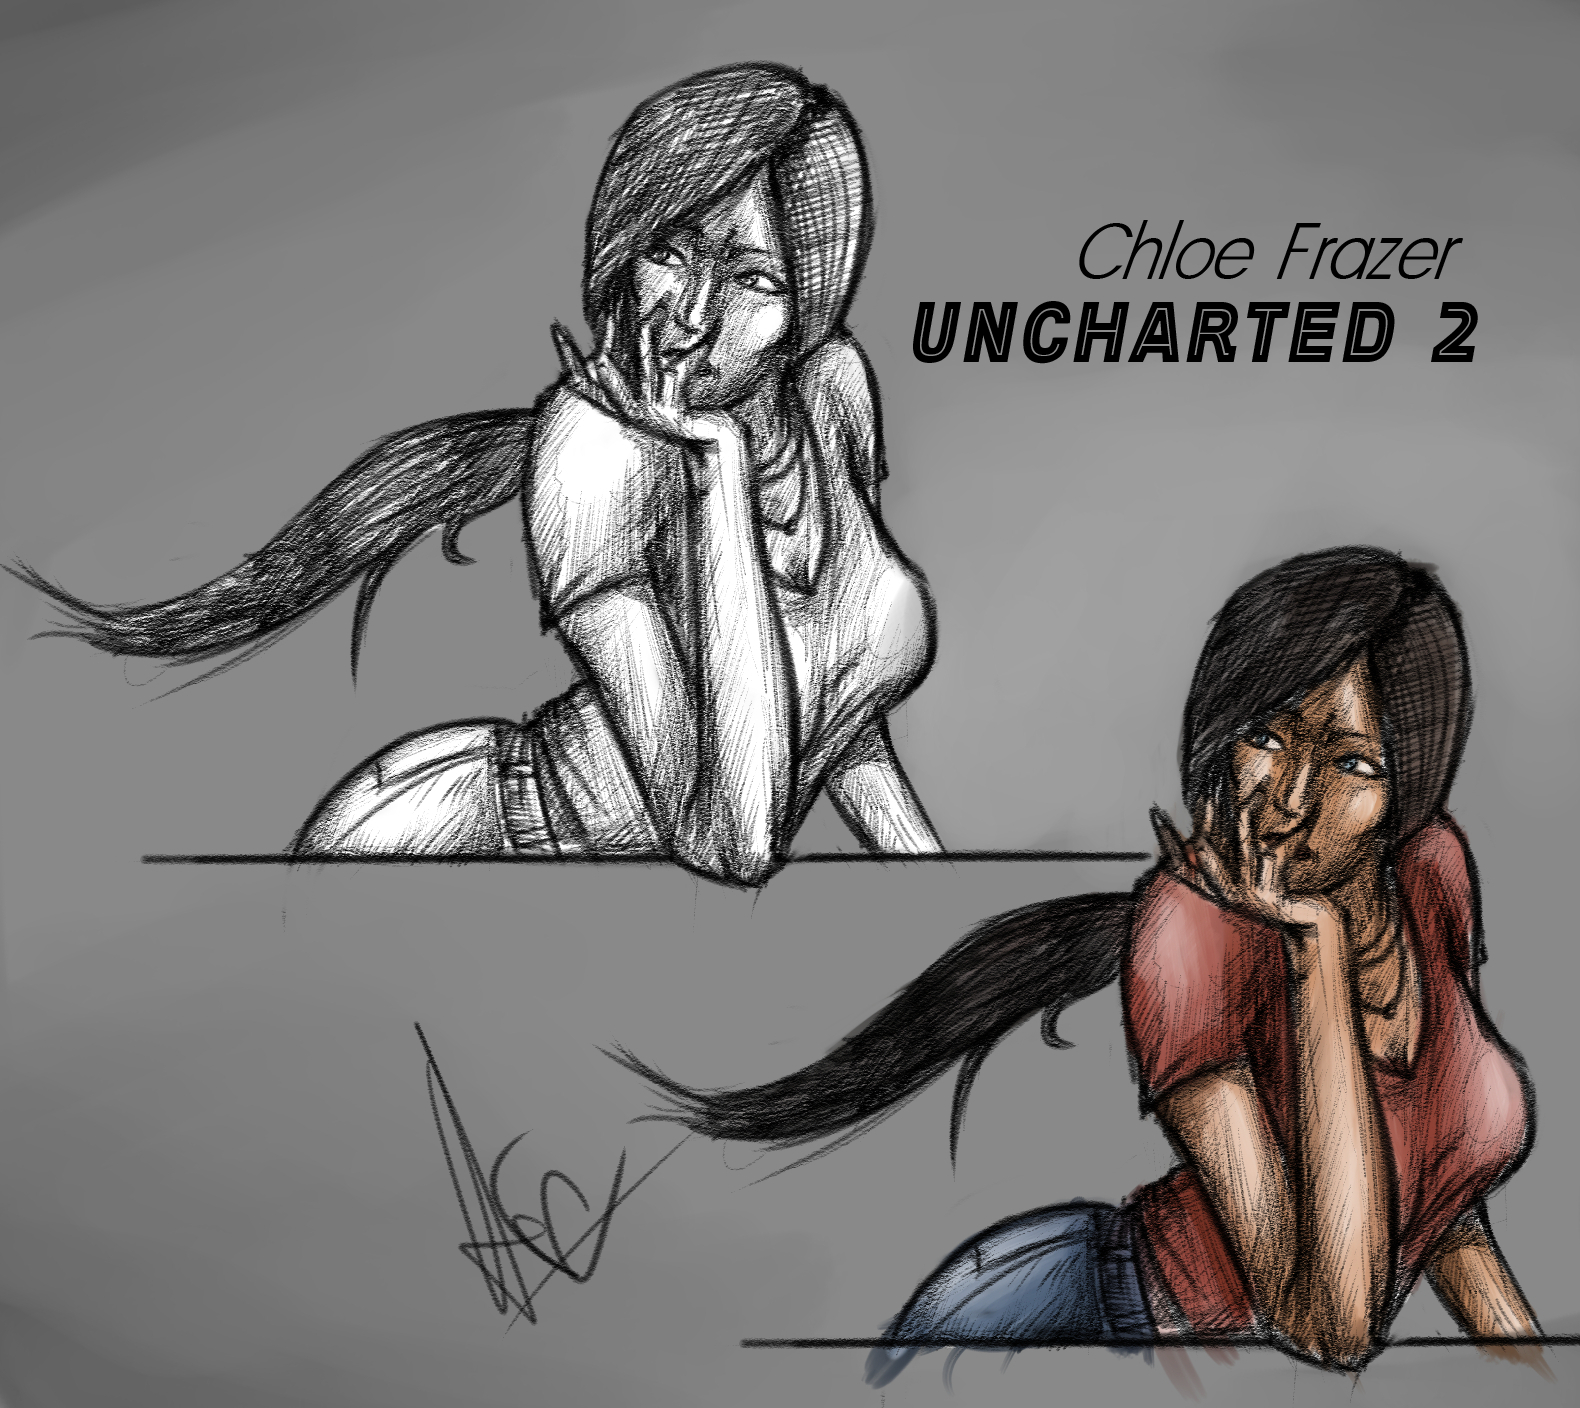 Quick sketch for character Chloe Frazer (Uncharted 2).